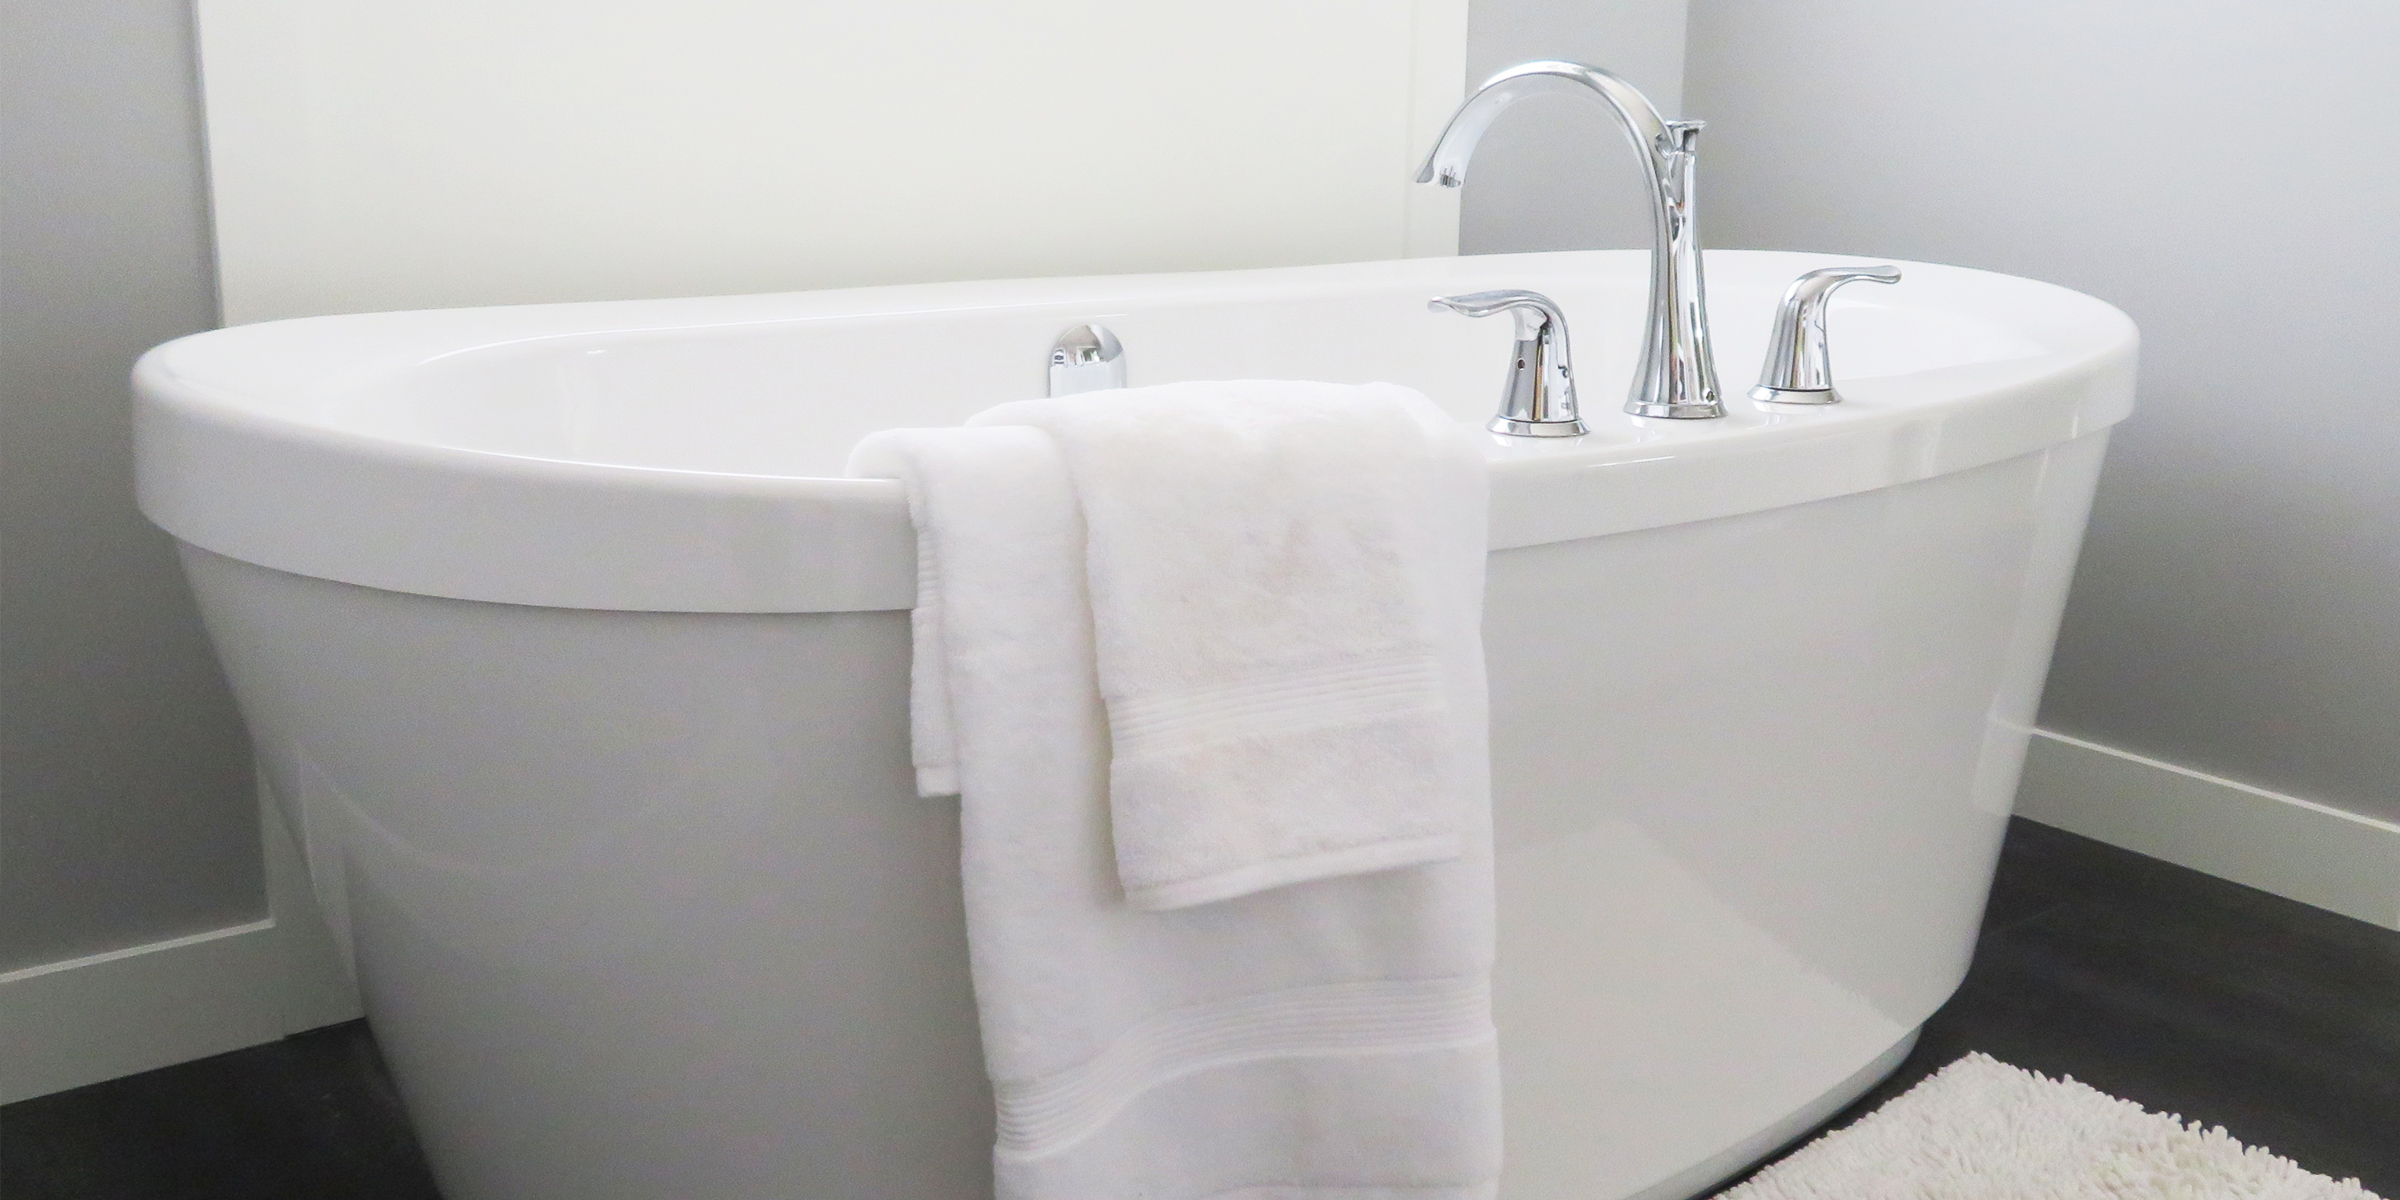 Fluffy white towel hanging on a bath tub